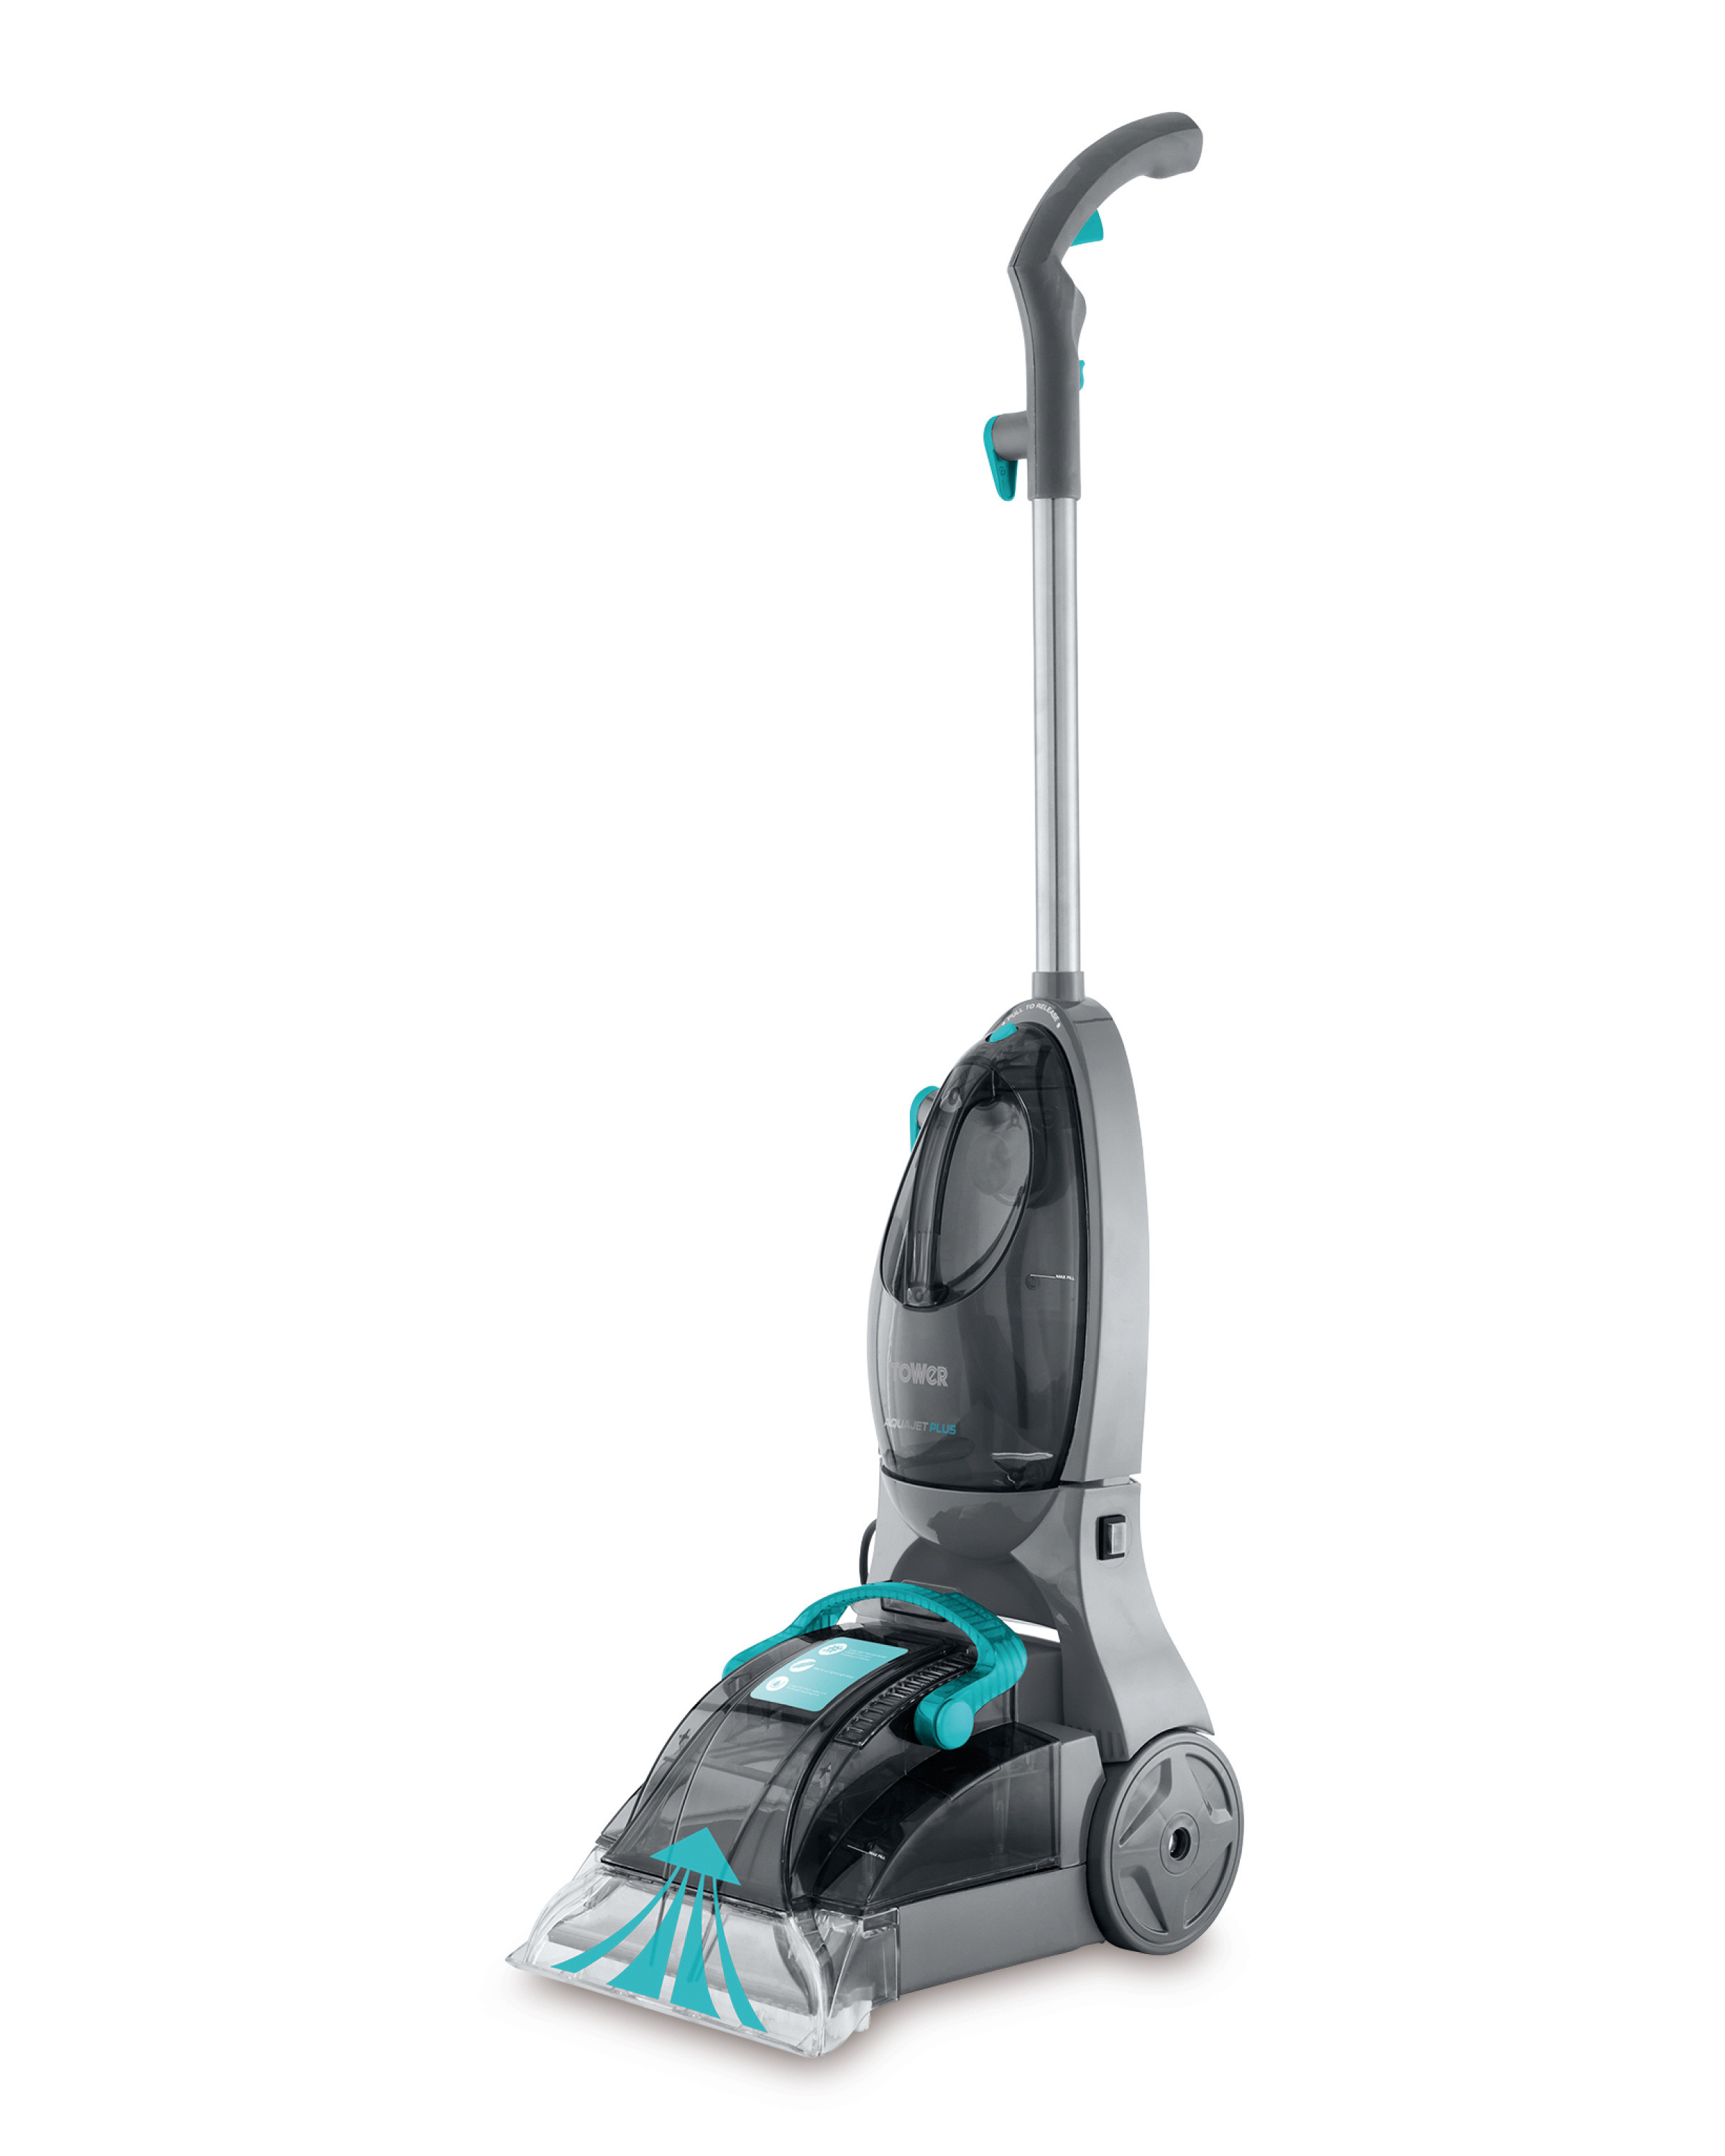 Tower Carpet Cleaner